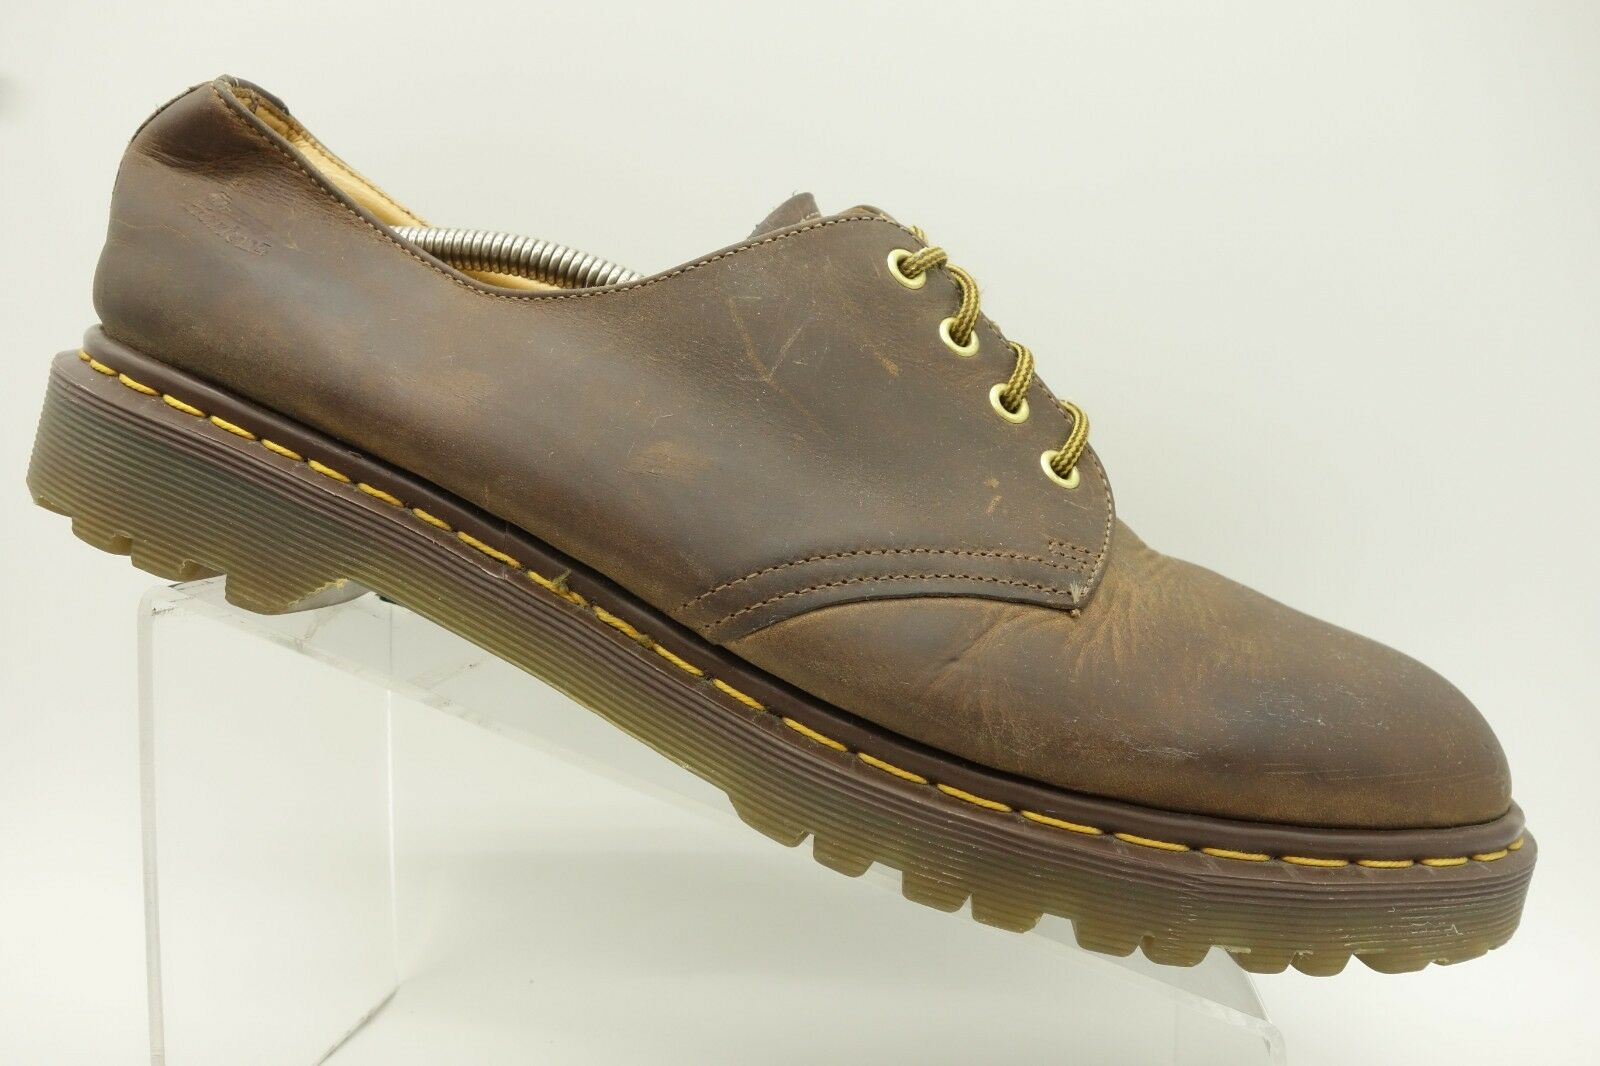 Dr Martens England Brown Leather Lace Up Casual Oxford shoes Mens 14 UK   US 15